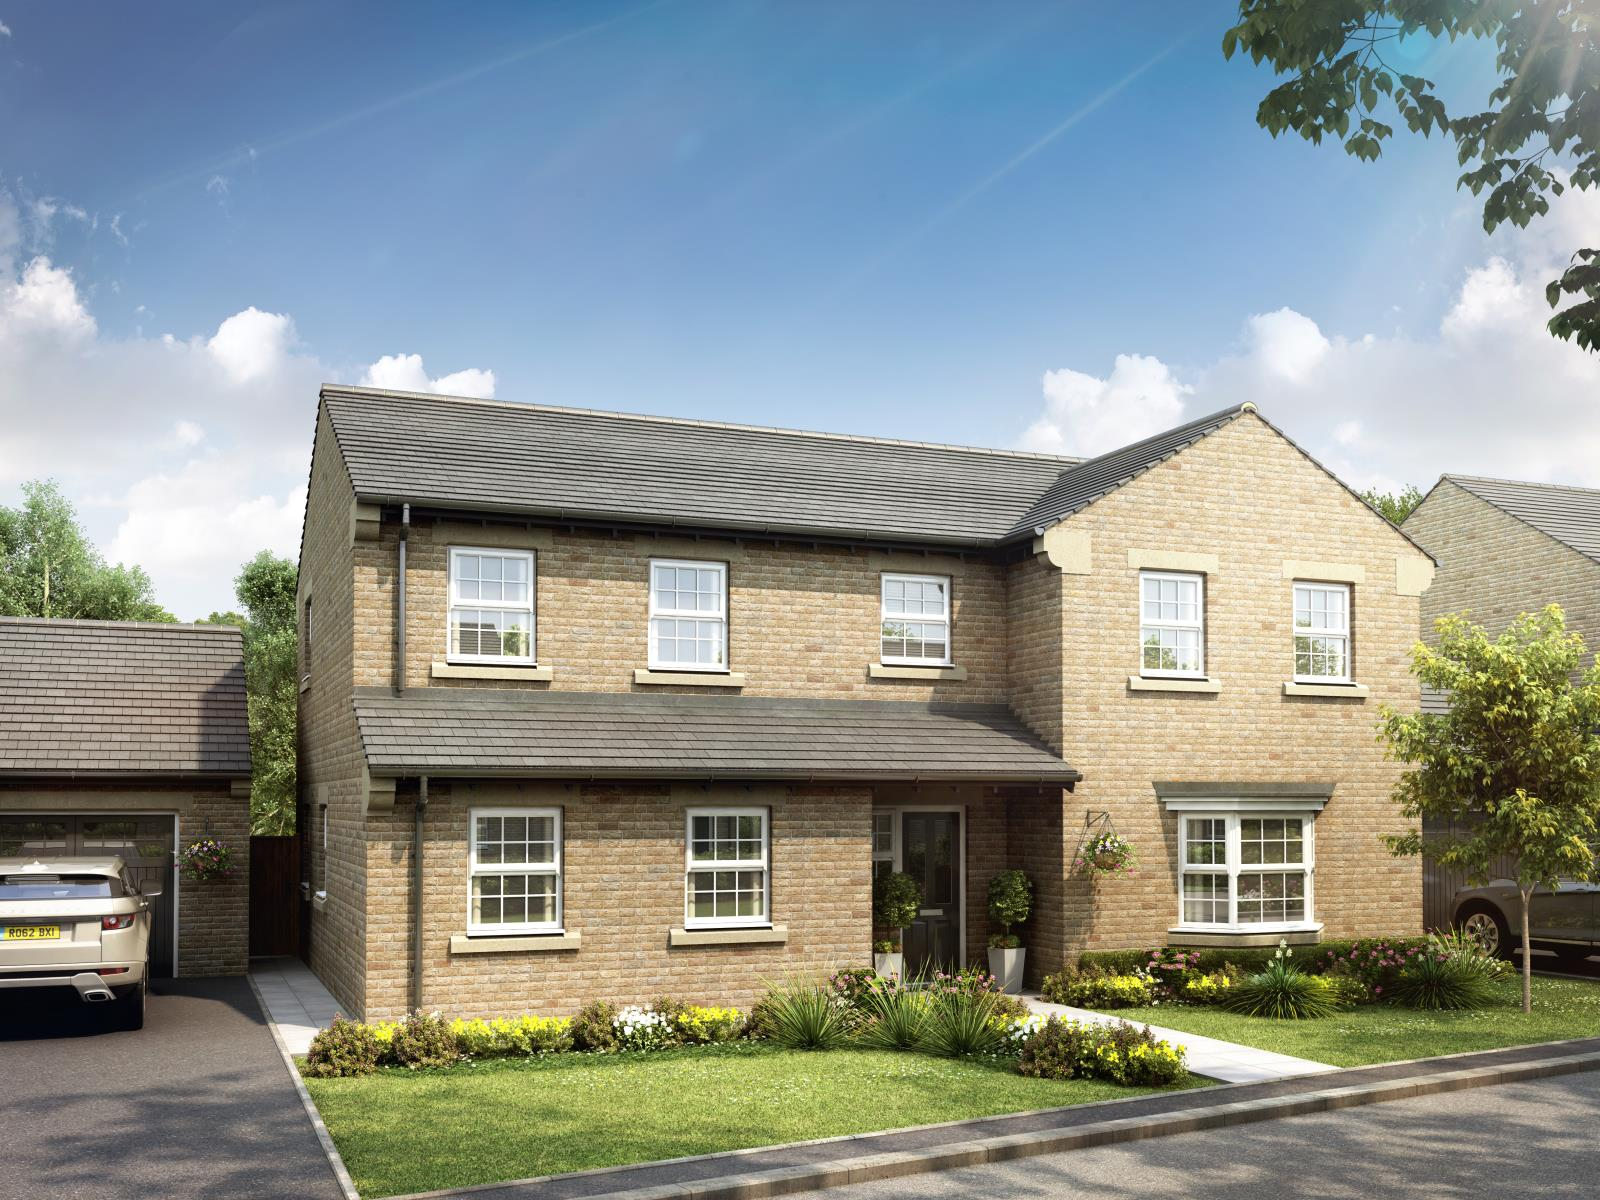 The Windsor (Plot 9), Vicarage Meadows, Holmfirth, HD9 1DZ